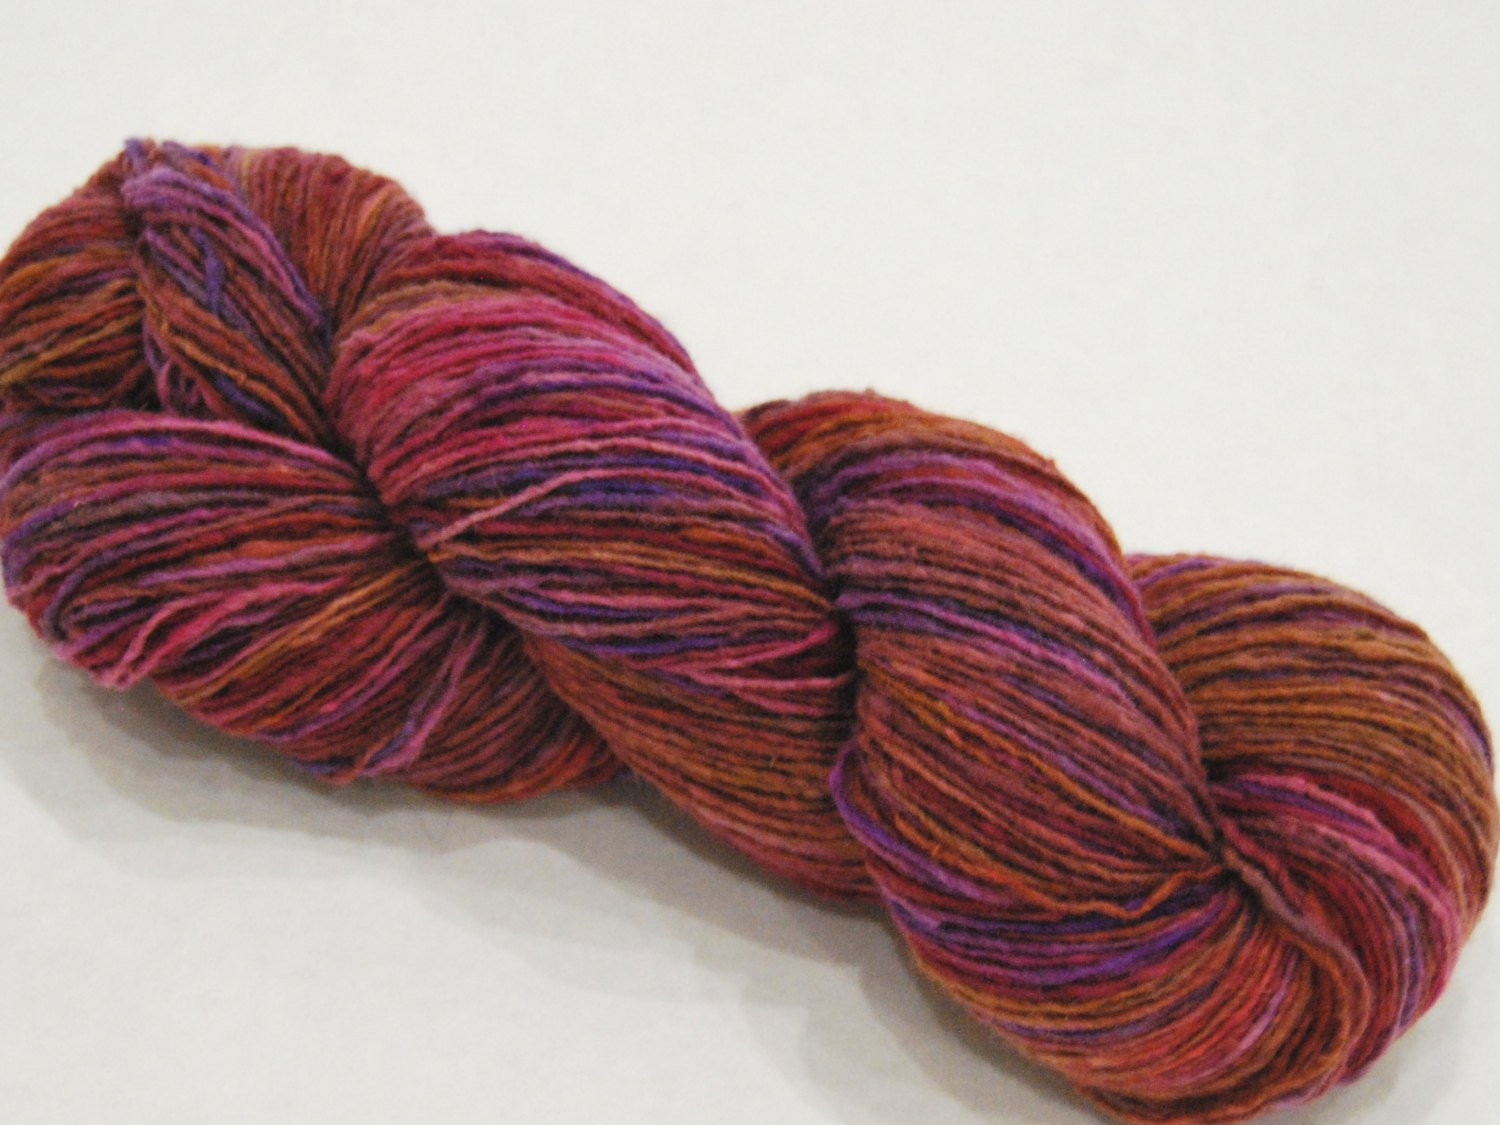 Merino Yarn Unique Hand Dyed Worsted Merino Wool Yarn 100g Berry Pie From Of Unique 41 Photos Merino Yarn